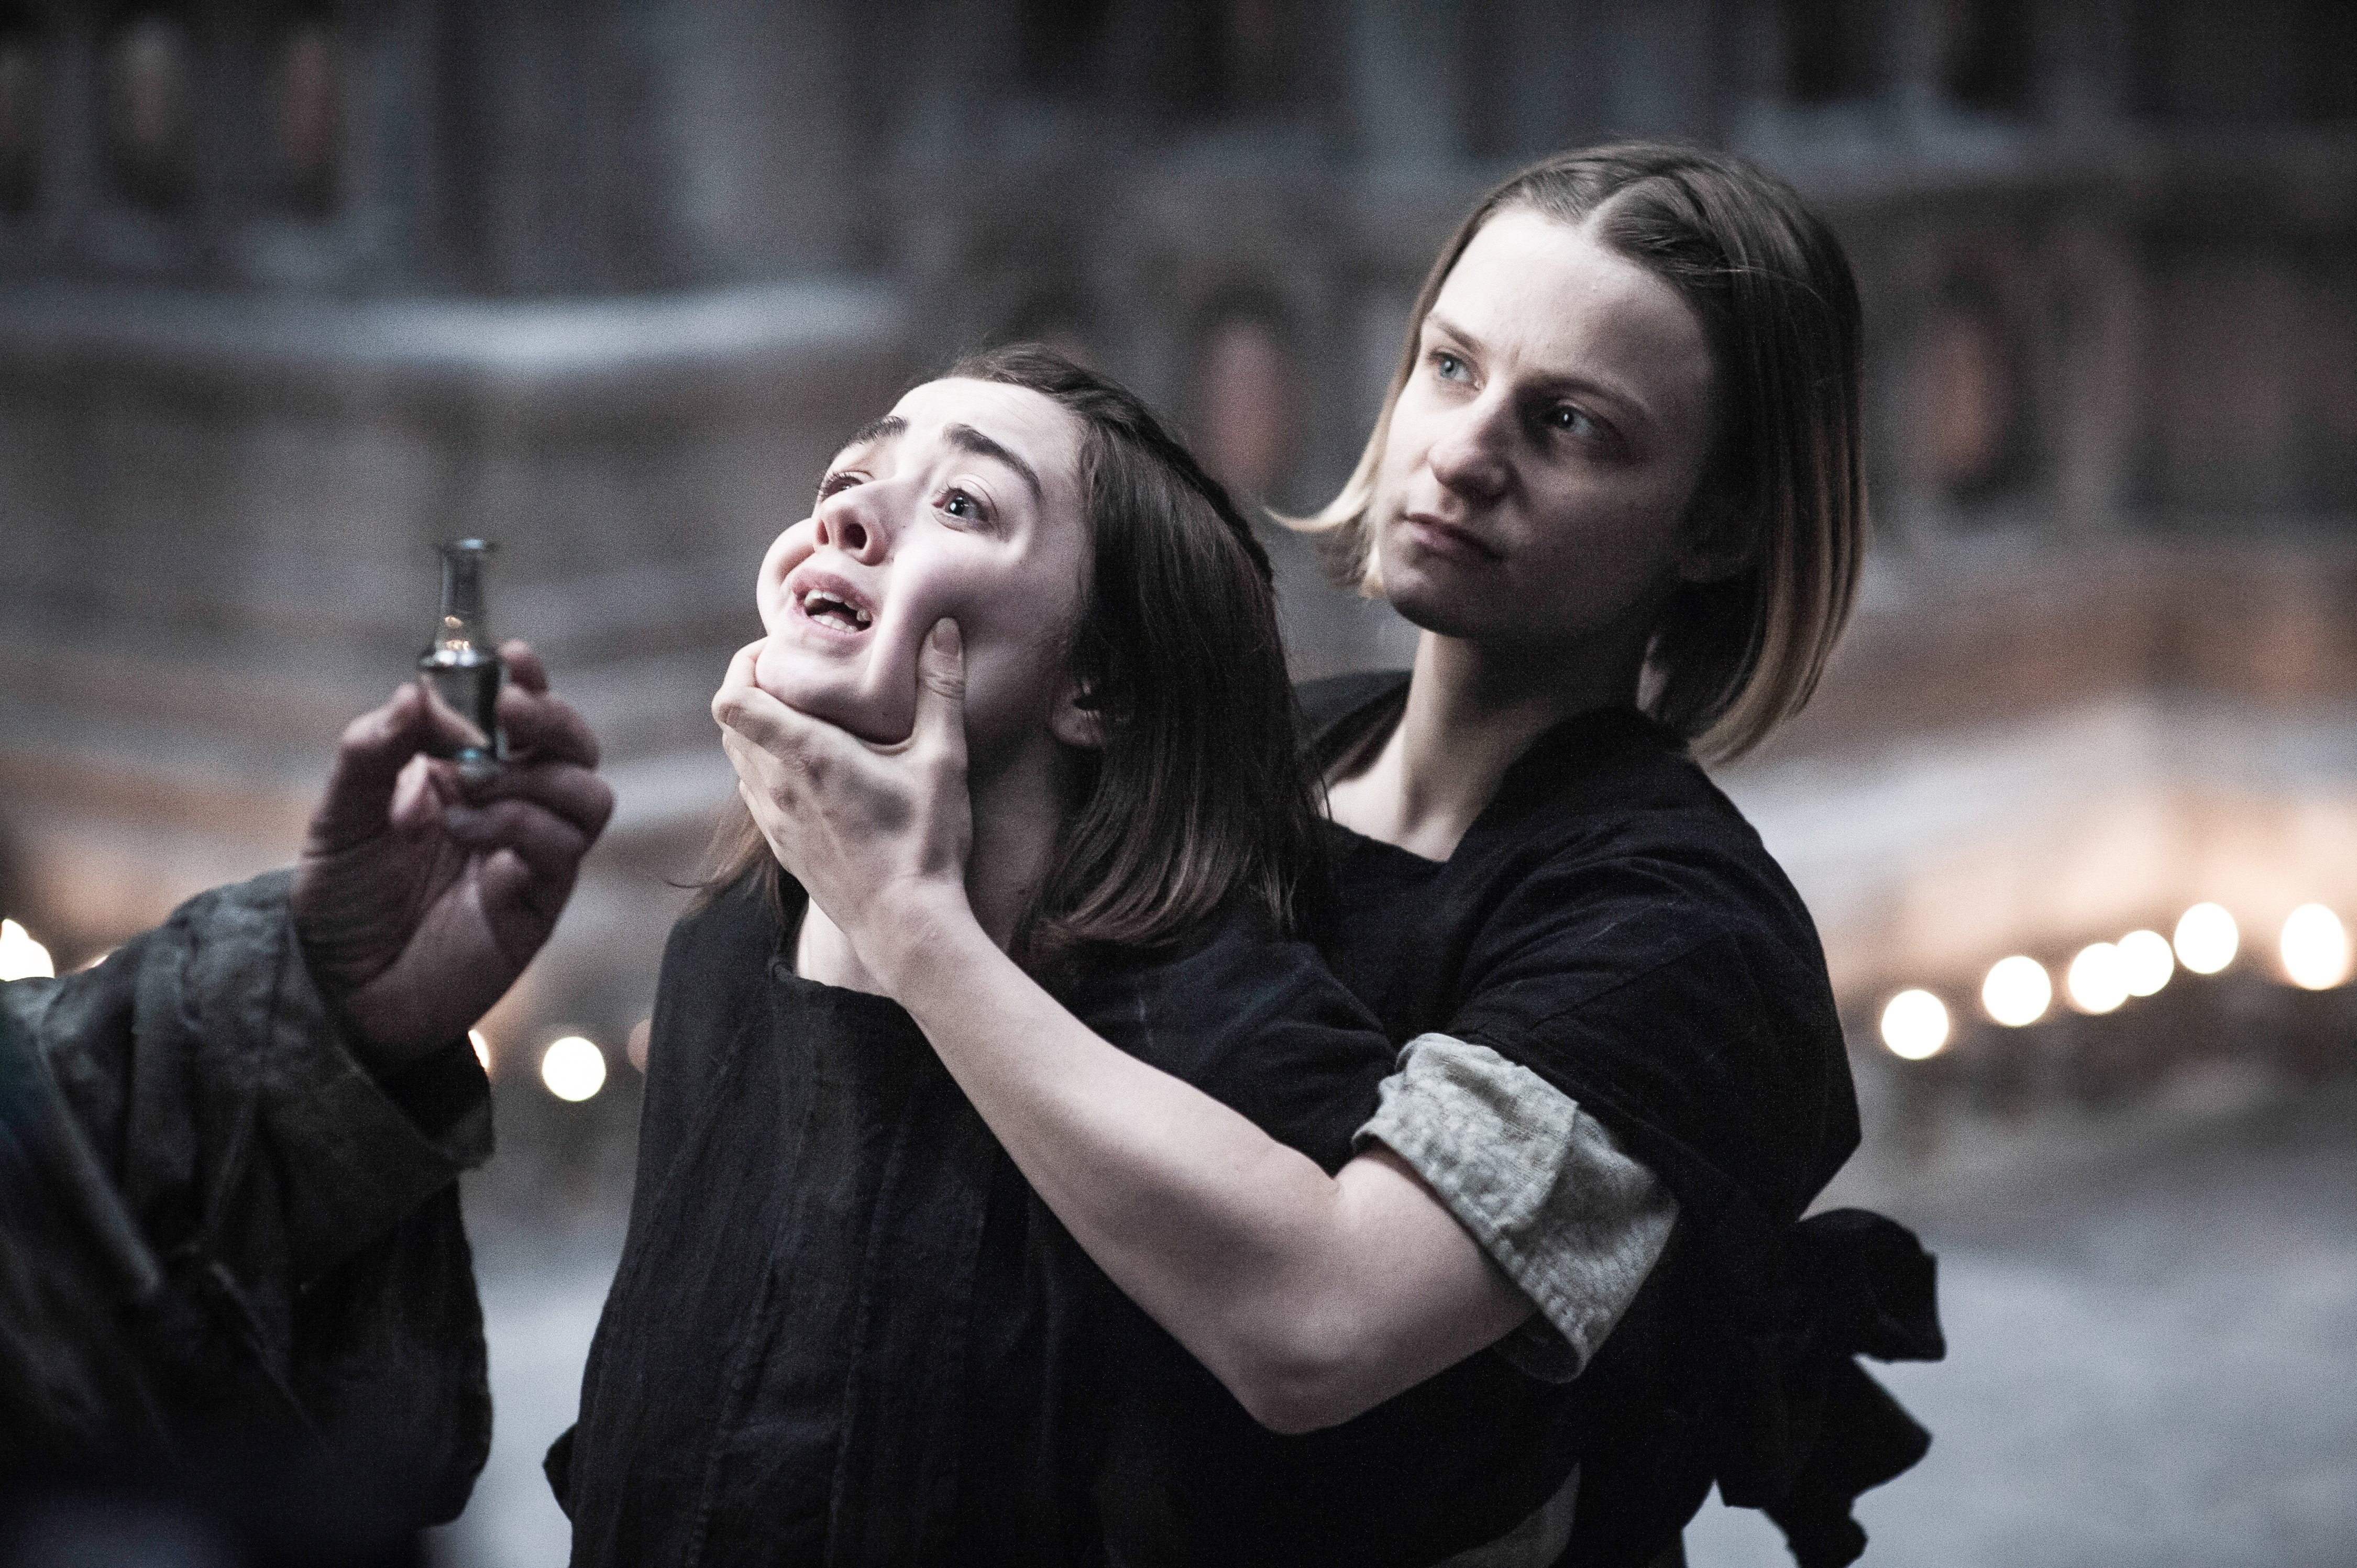 why did waif stab arya on game of thrones a girl had to die